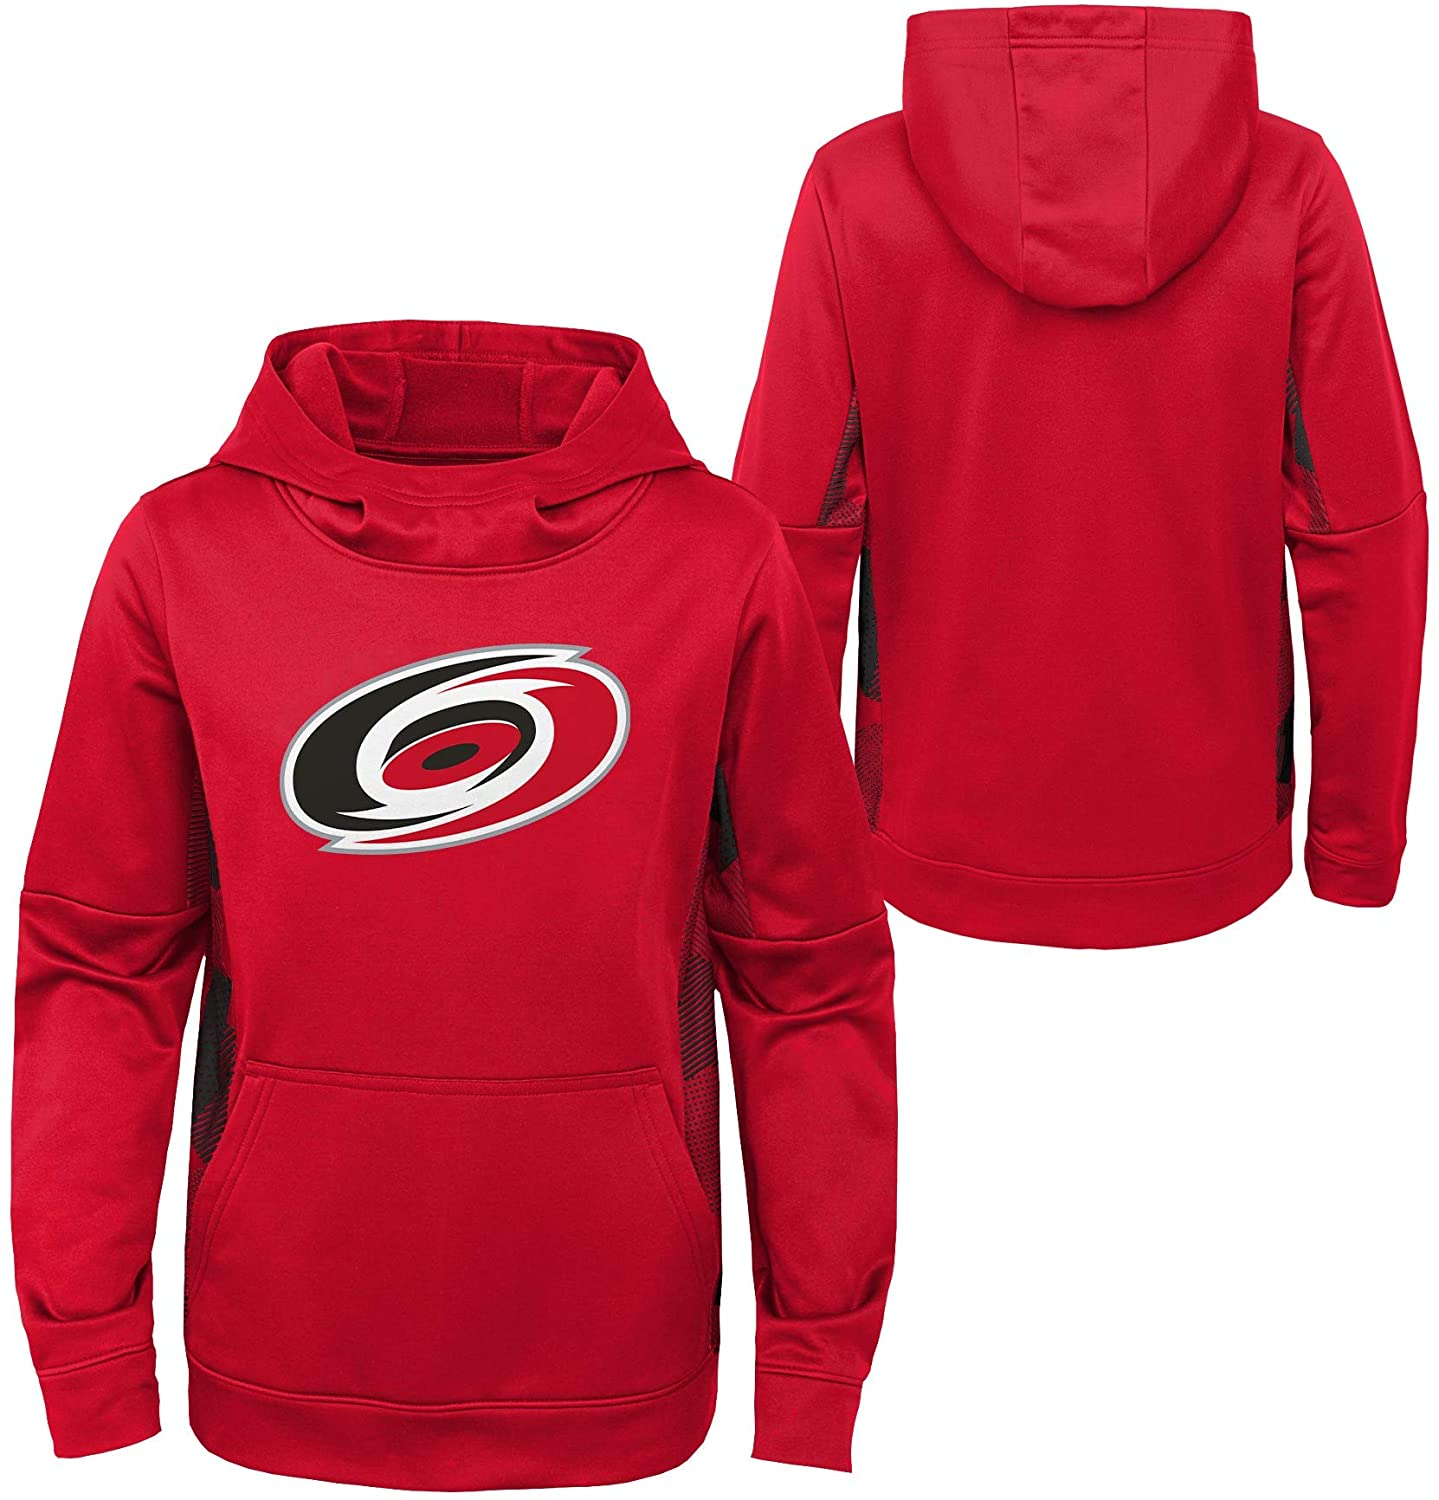 OuterStuff Youth NHL Carolina Hurricanes Performance Hoodie Youth Sizing (Youth S (6/8))